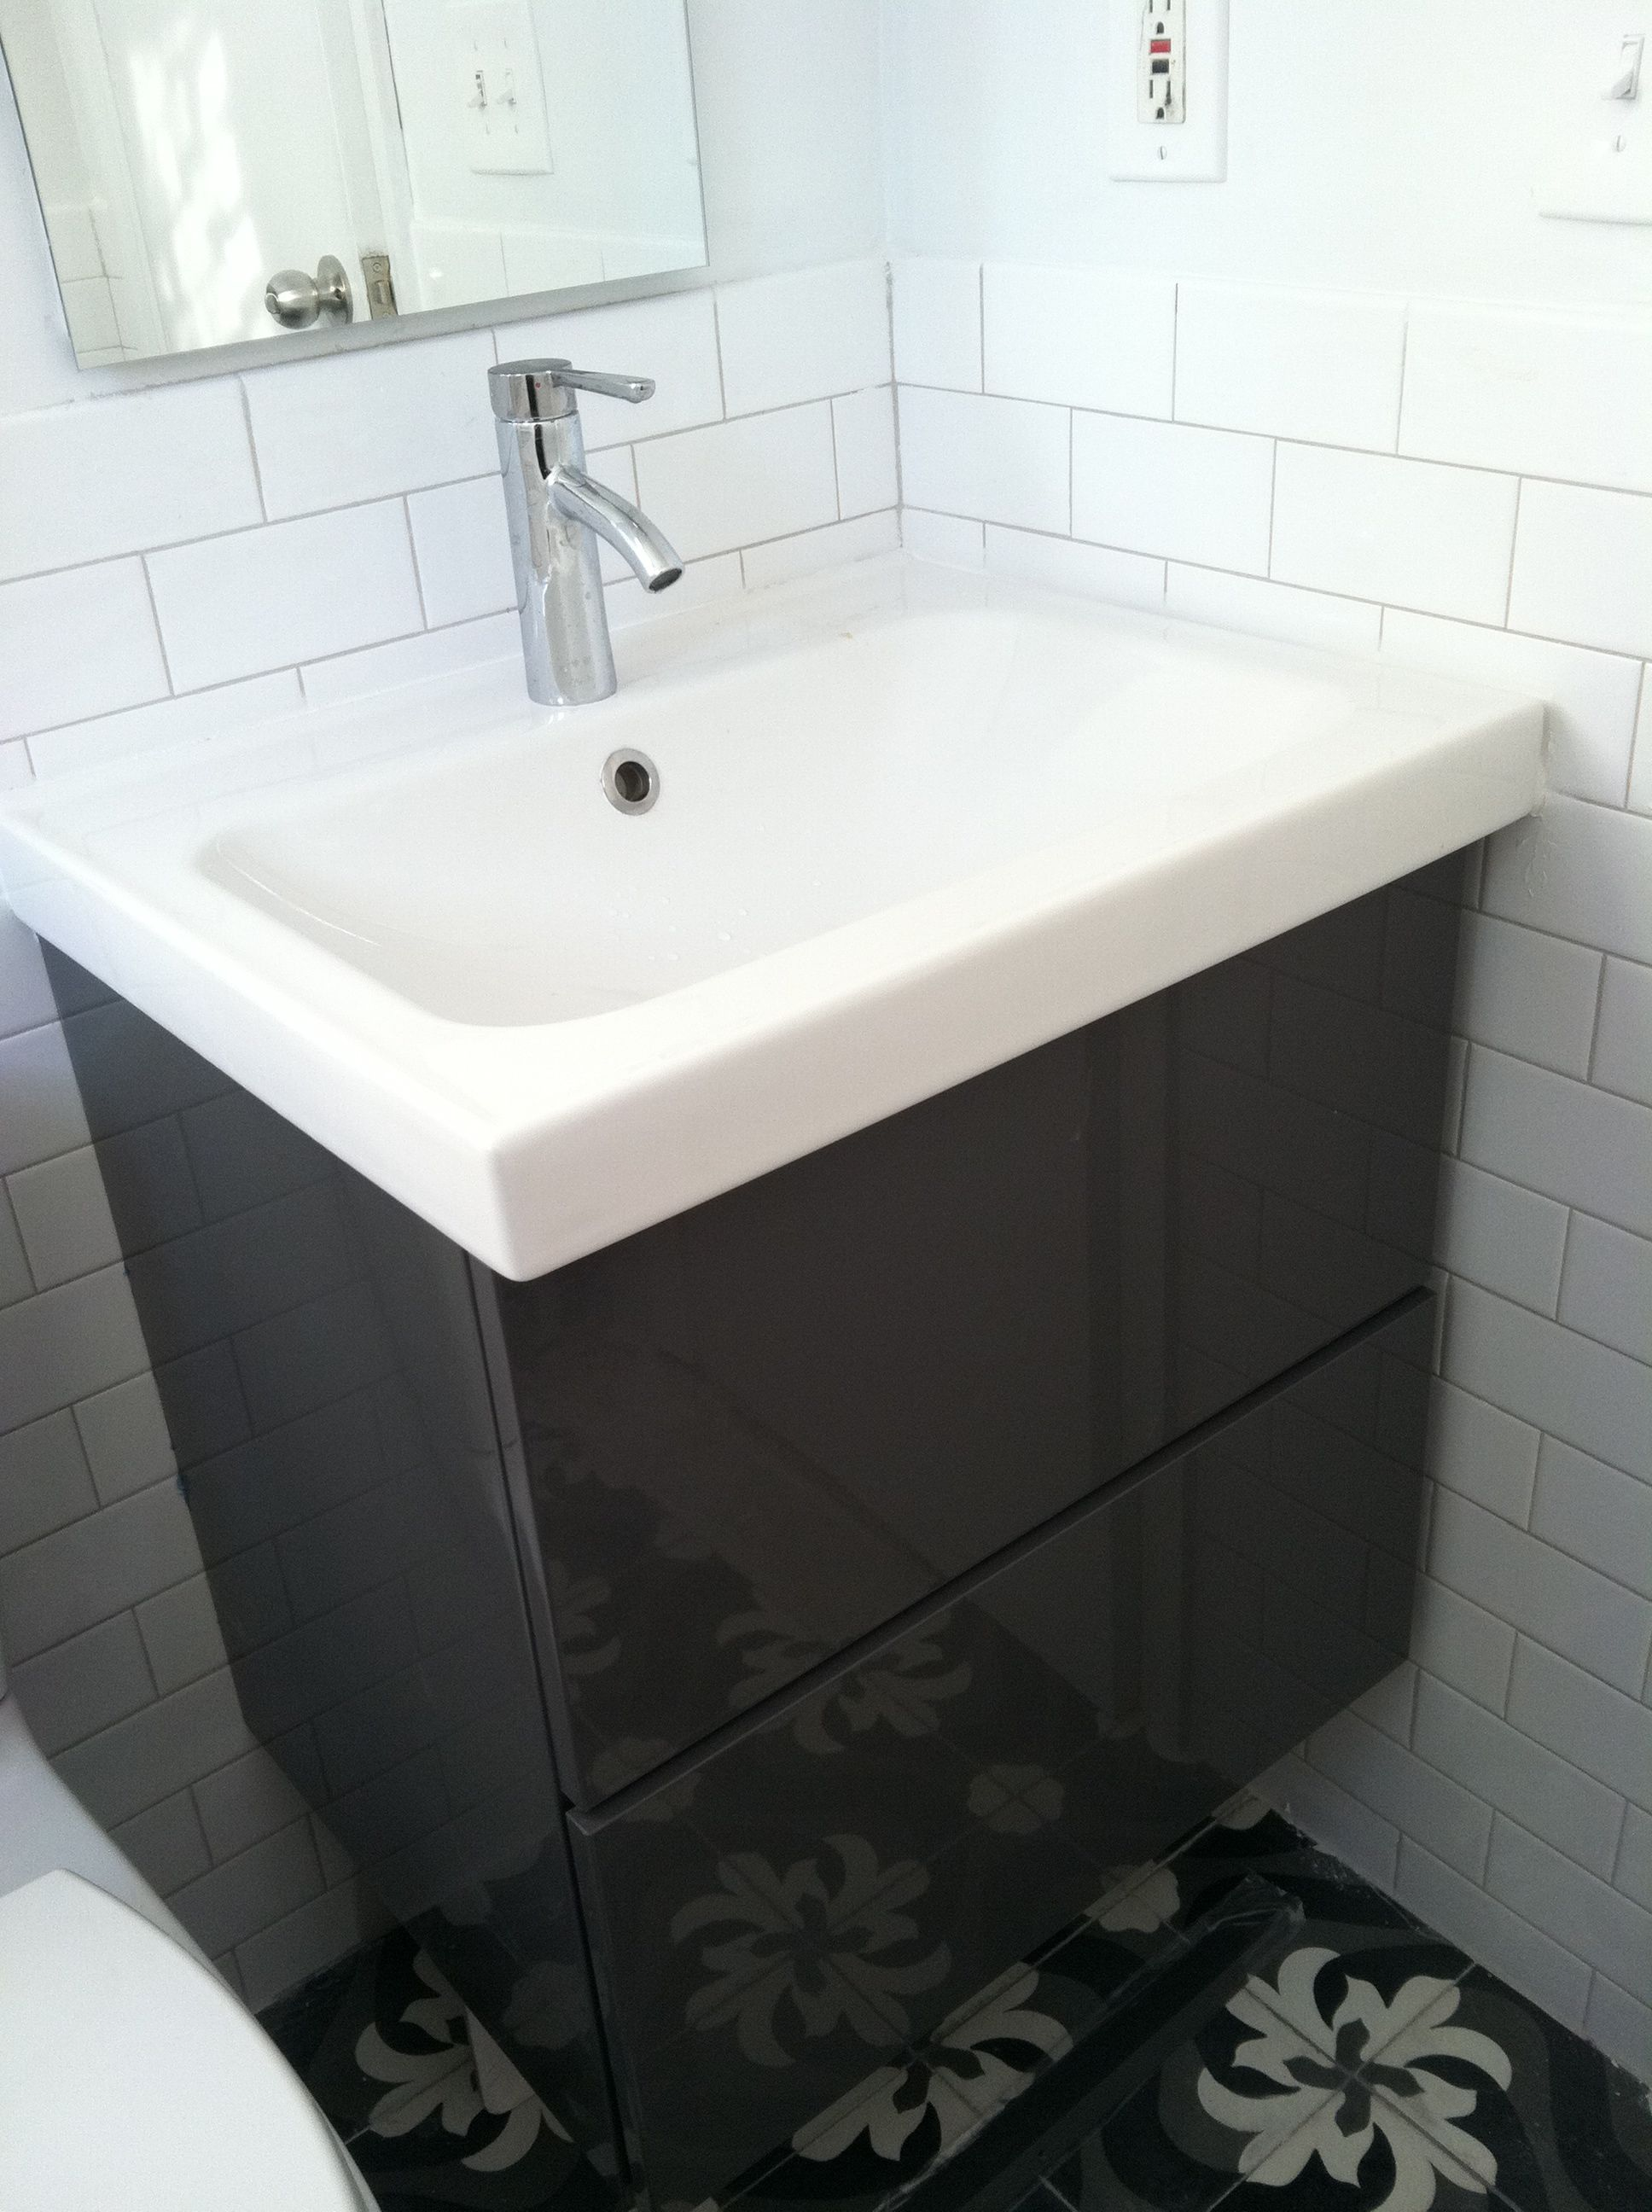 Good Two Of These? Or One Double Sink?